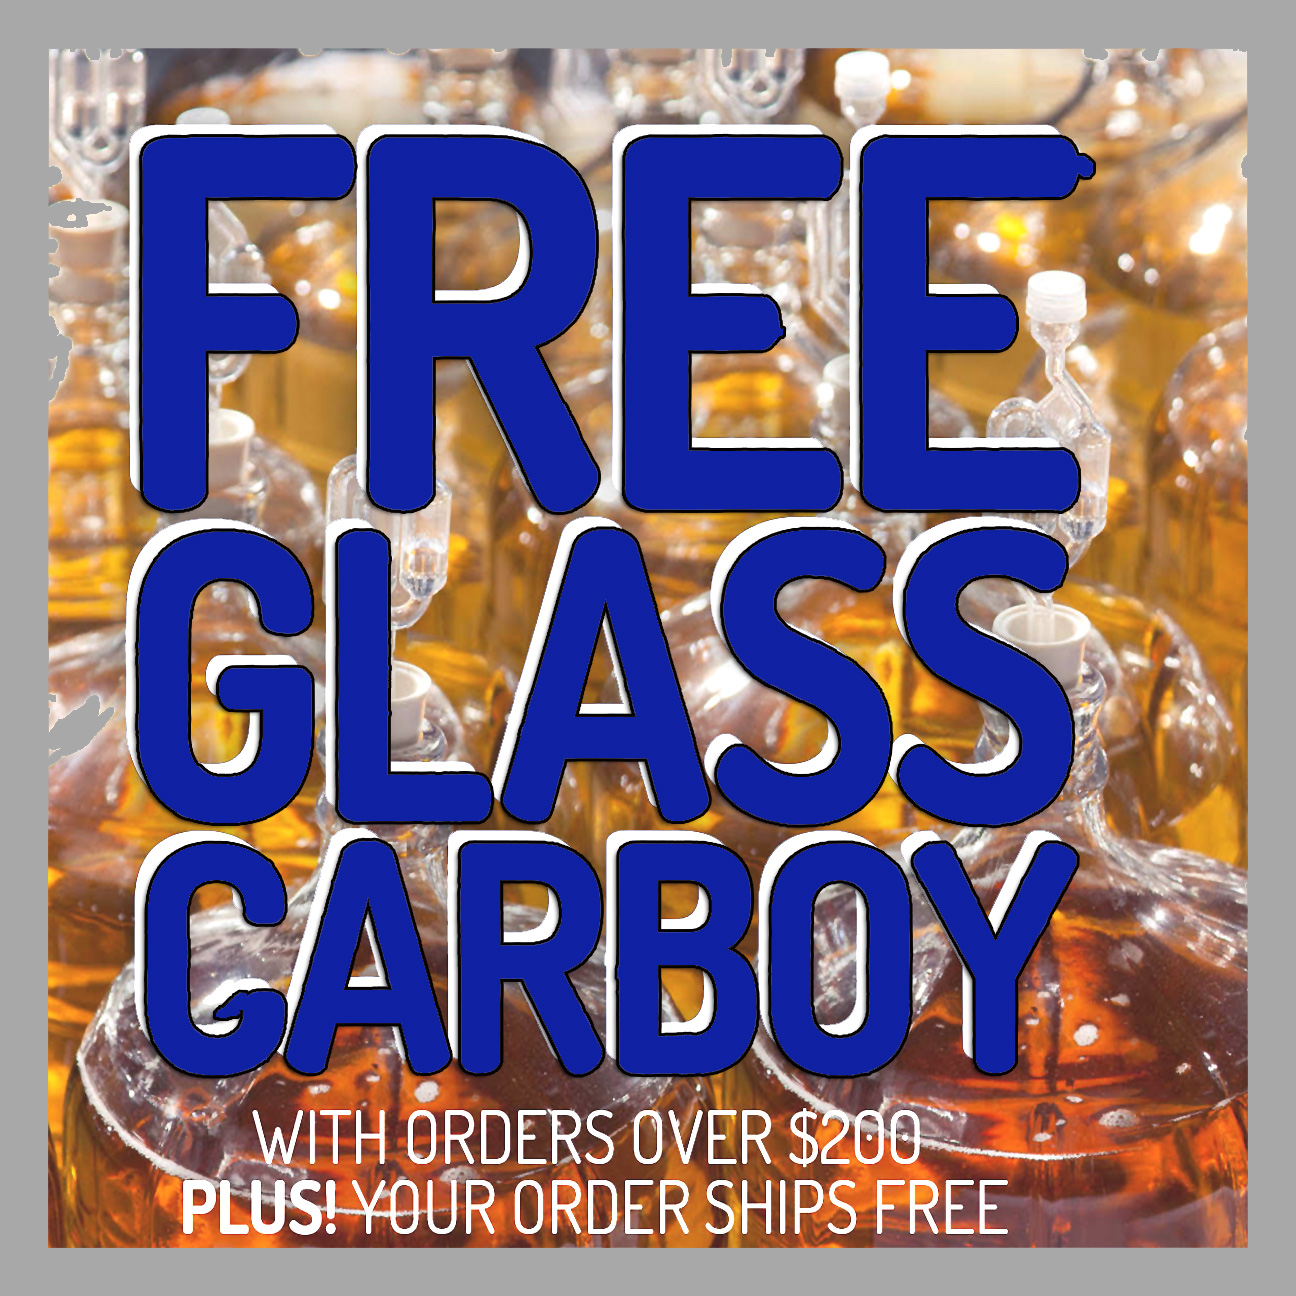 Home Wine Making Coupon Codes for Spend $200 at MidwestSupplies.com and get a Free Carboy with this Midwest Supplies Promo Code Coupon Code